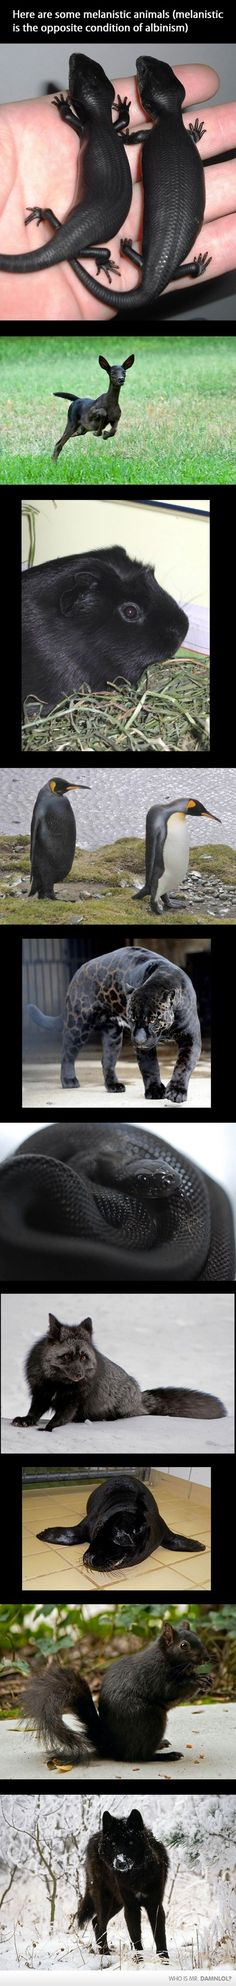 Melanism - When the body produces too much Melanin instead of too little. The opposite of Albinism.